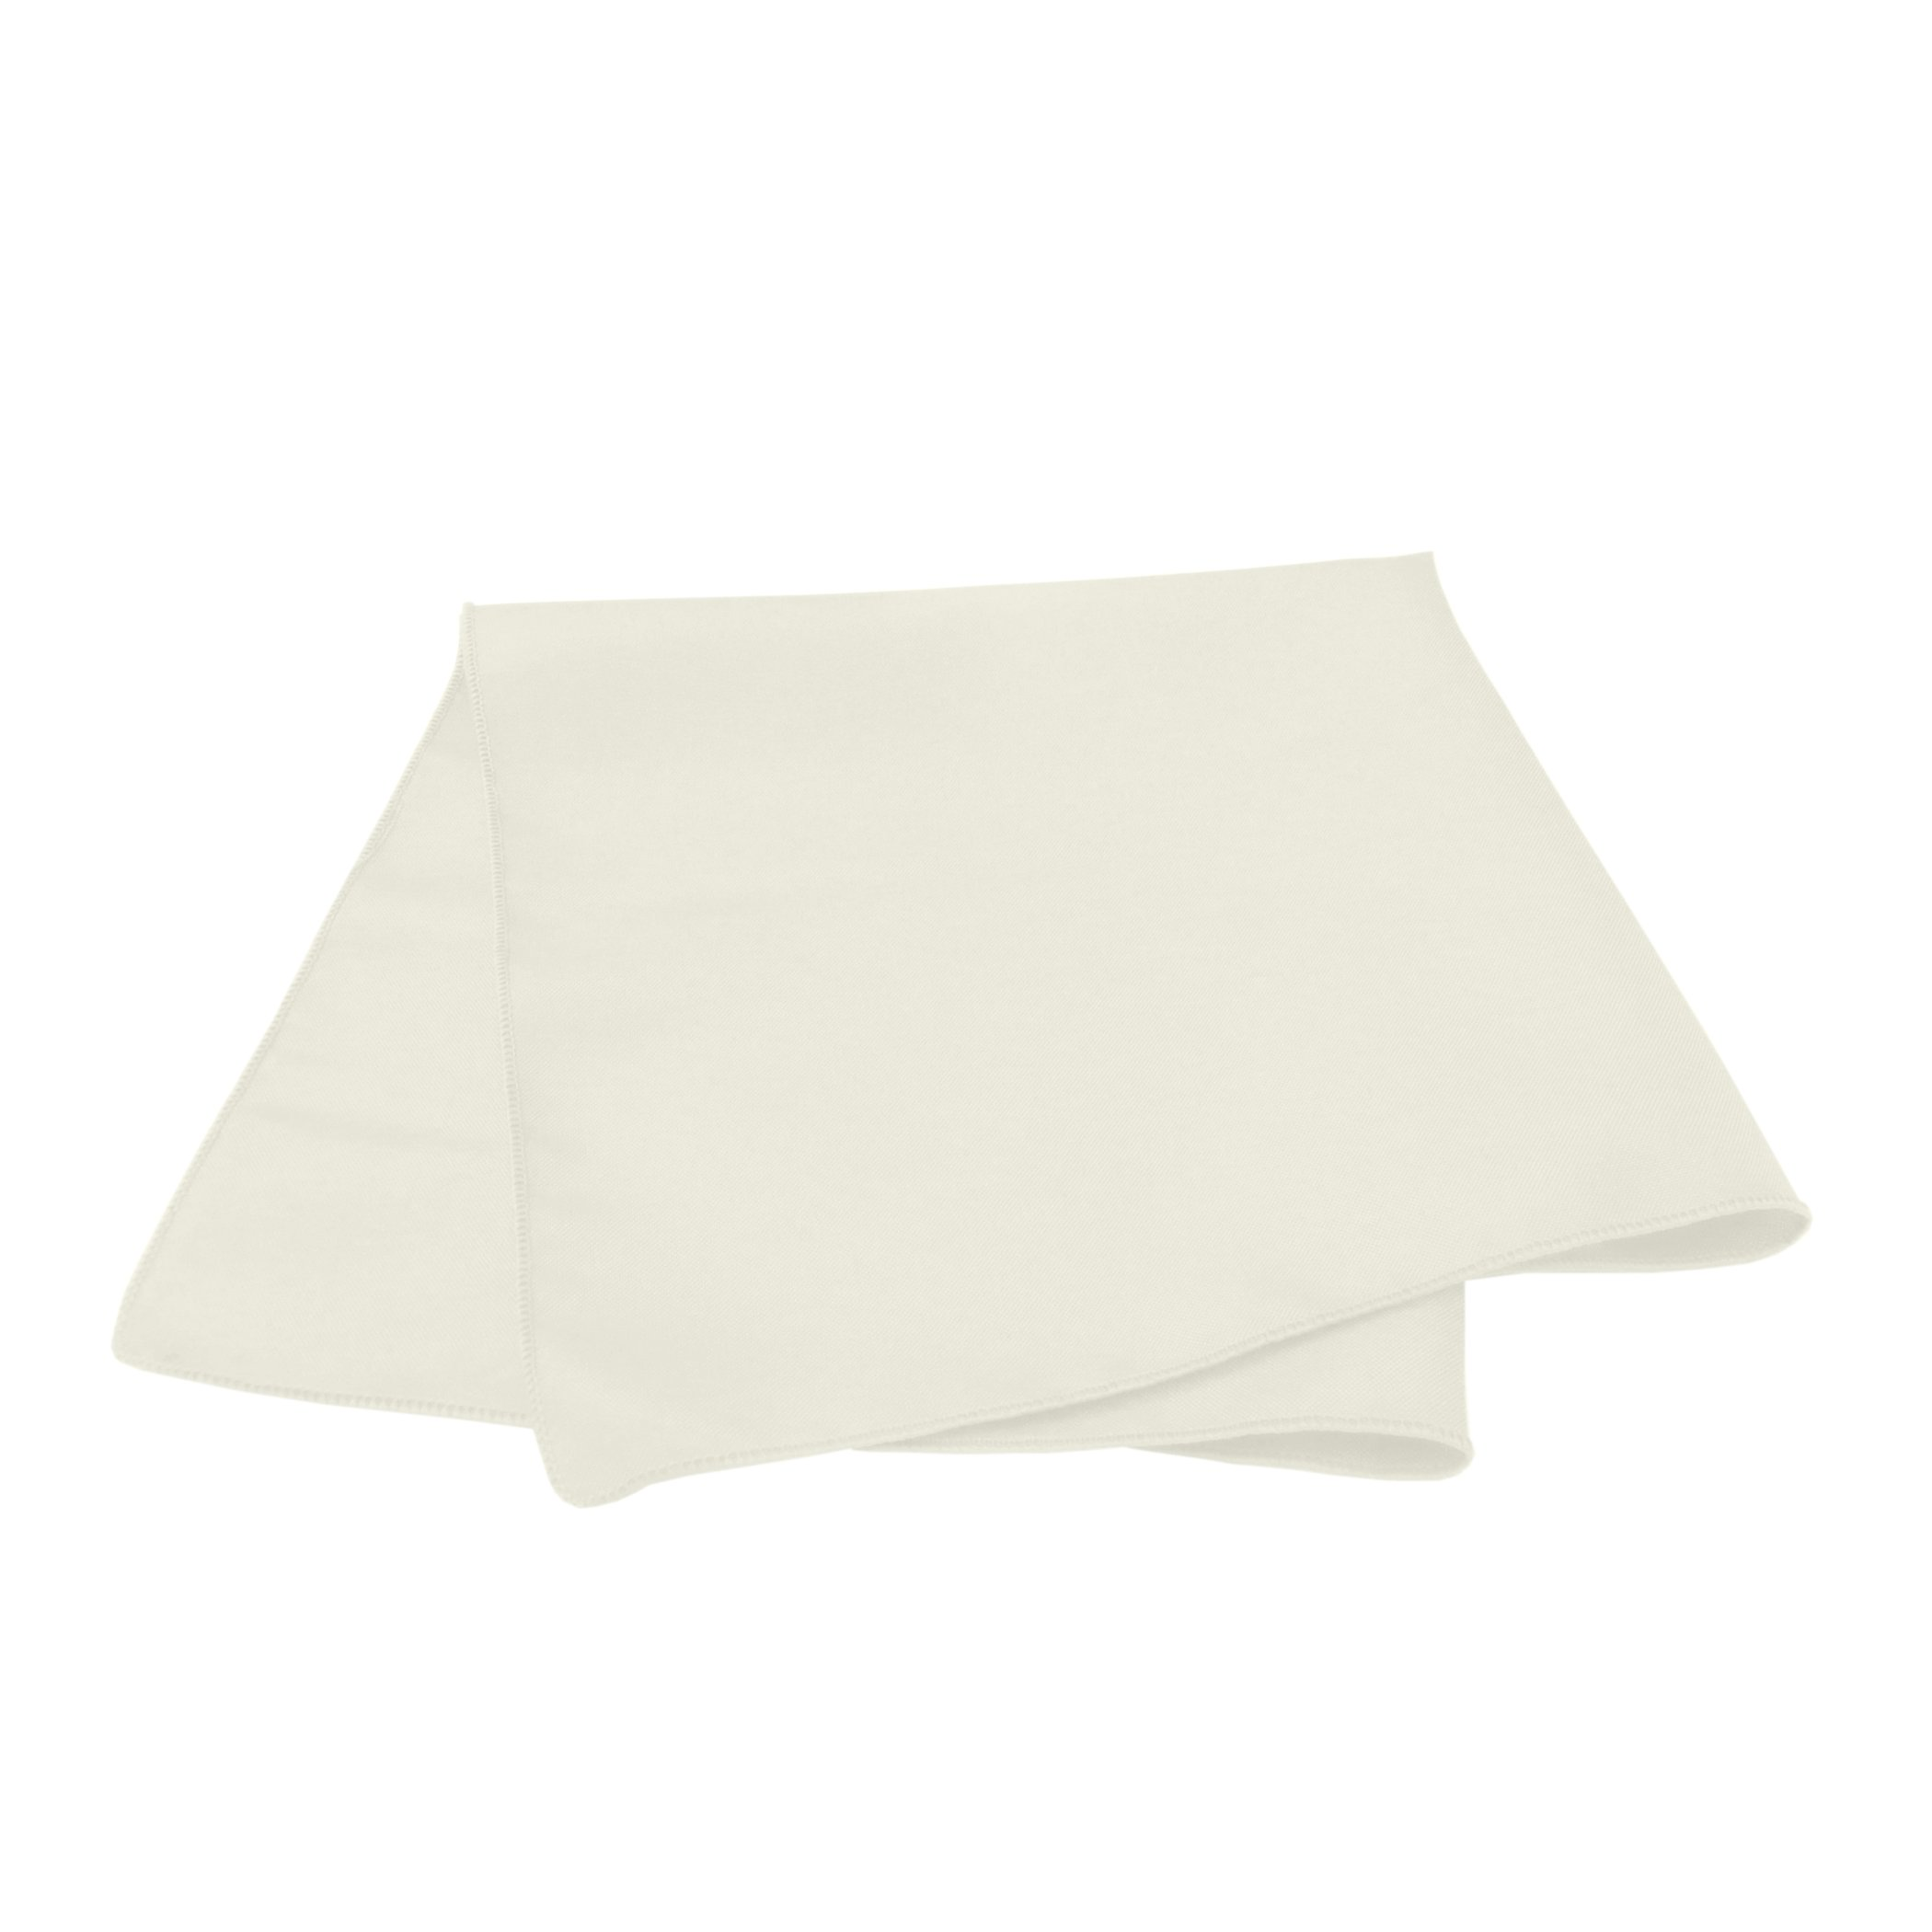 Ultimate Textile -55 Dozen- 17 x 17-Inch Polyester Cloth Napkins, Ivory Cream by Ultimate Textile (Image #2)